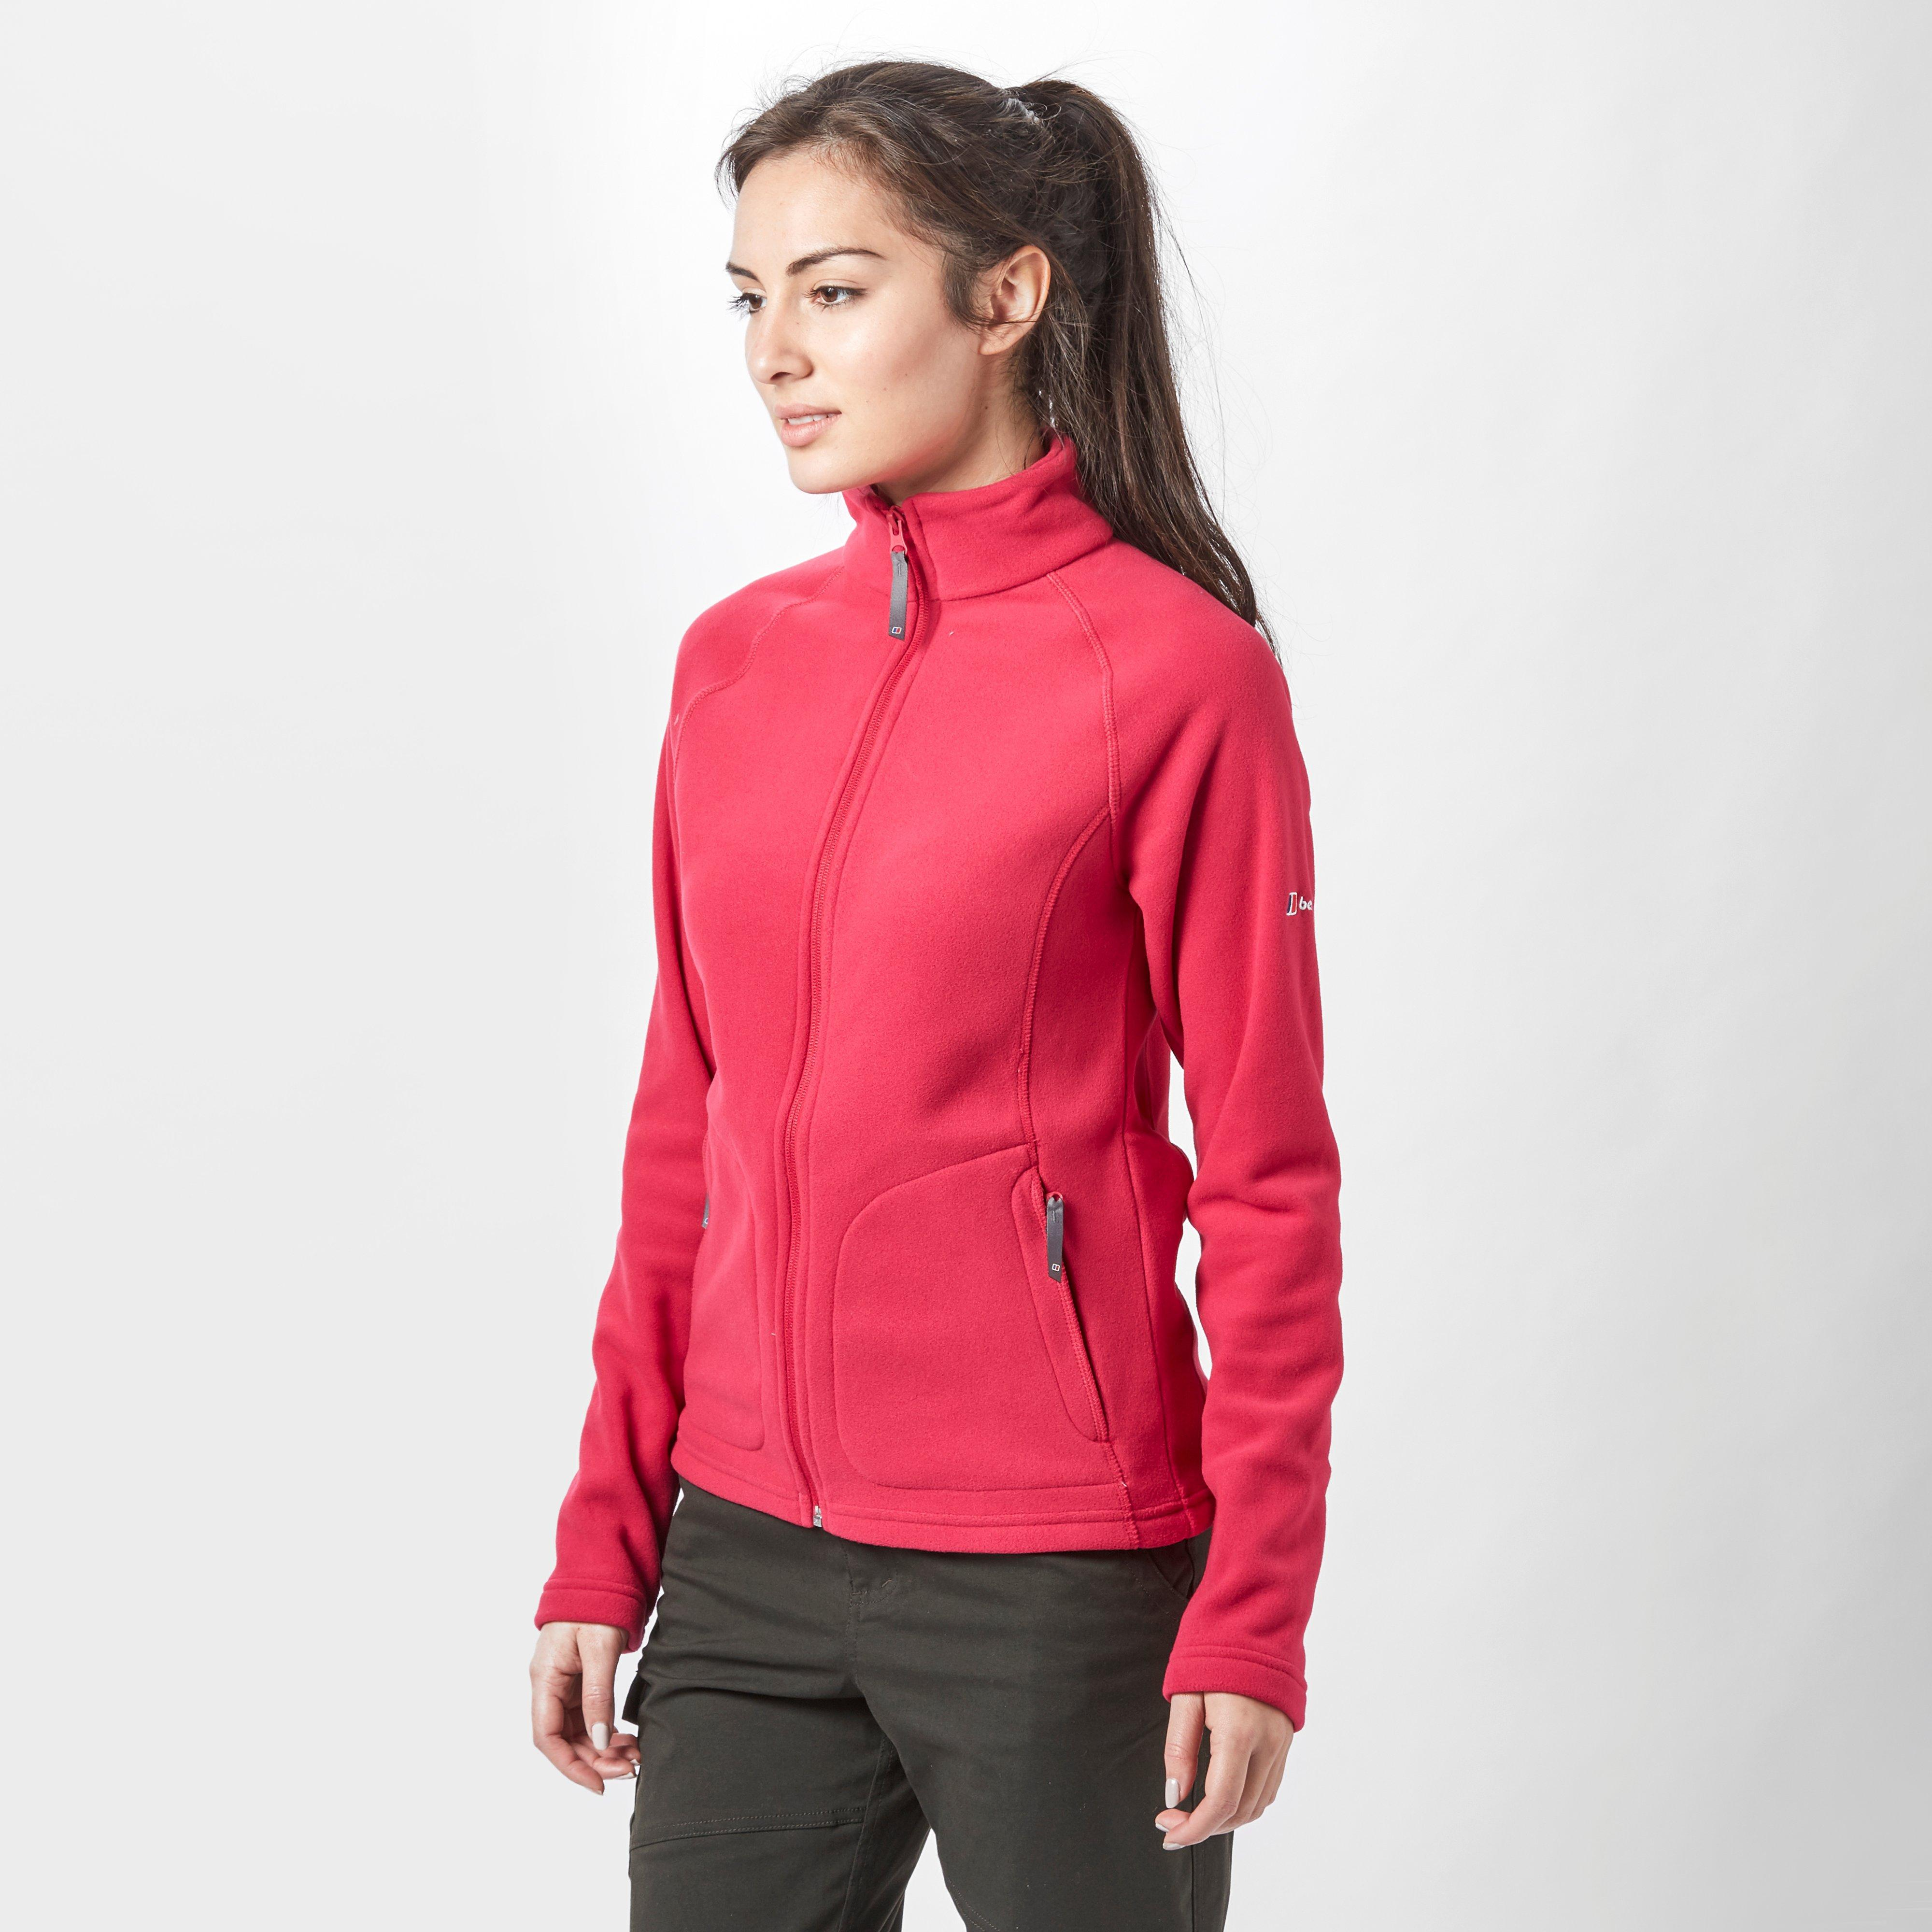 Berghaus Women's Arnside Fleece Jacket